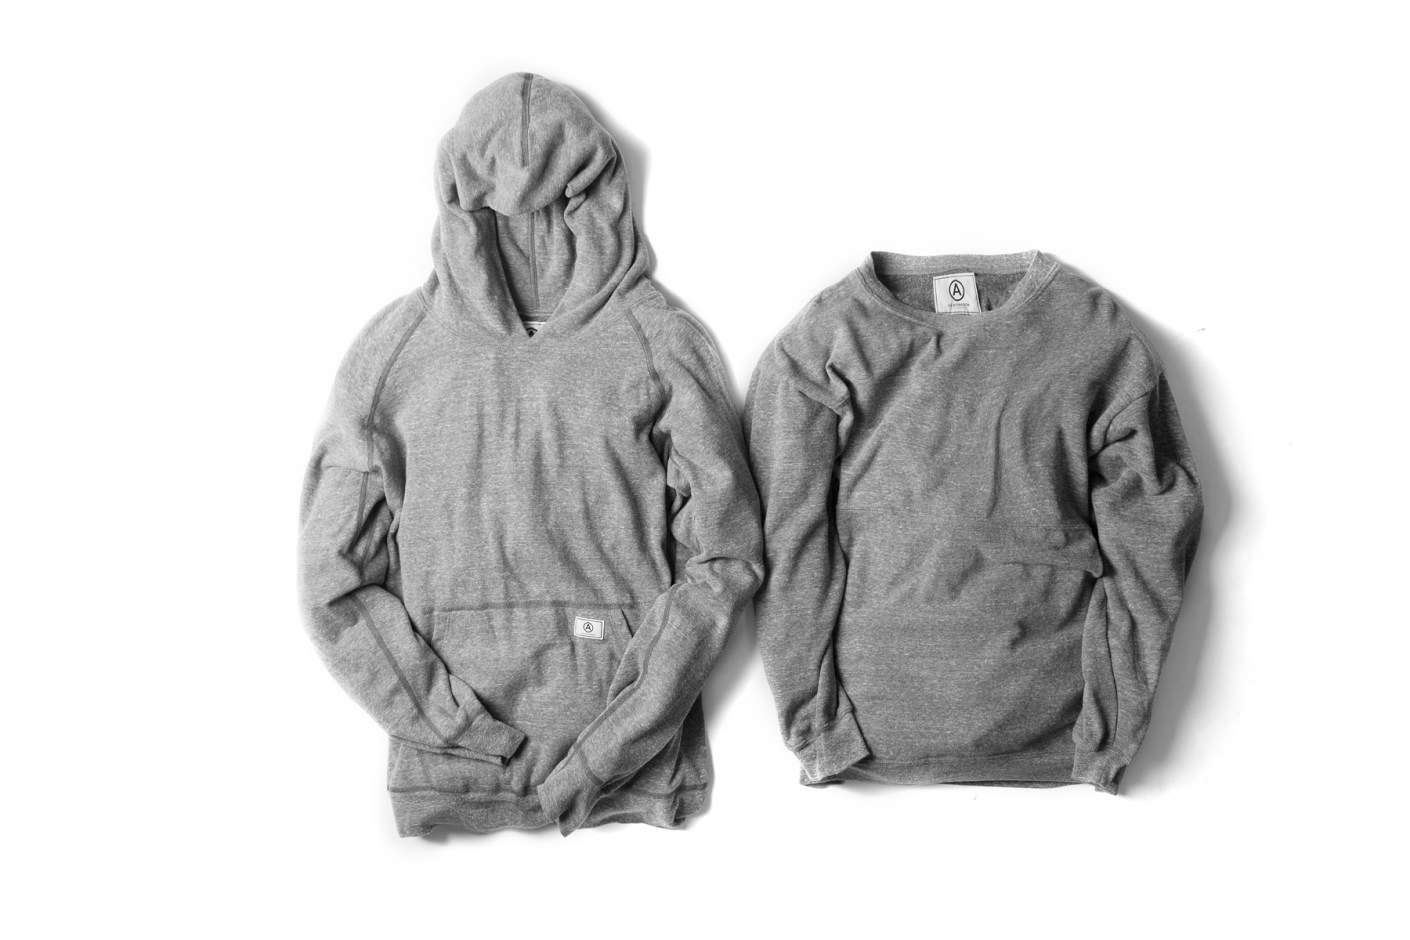 Image of U.S. Alteration 2014 Spring/Summer Sweatshirts